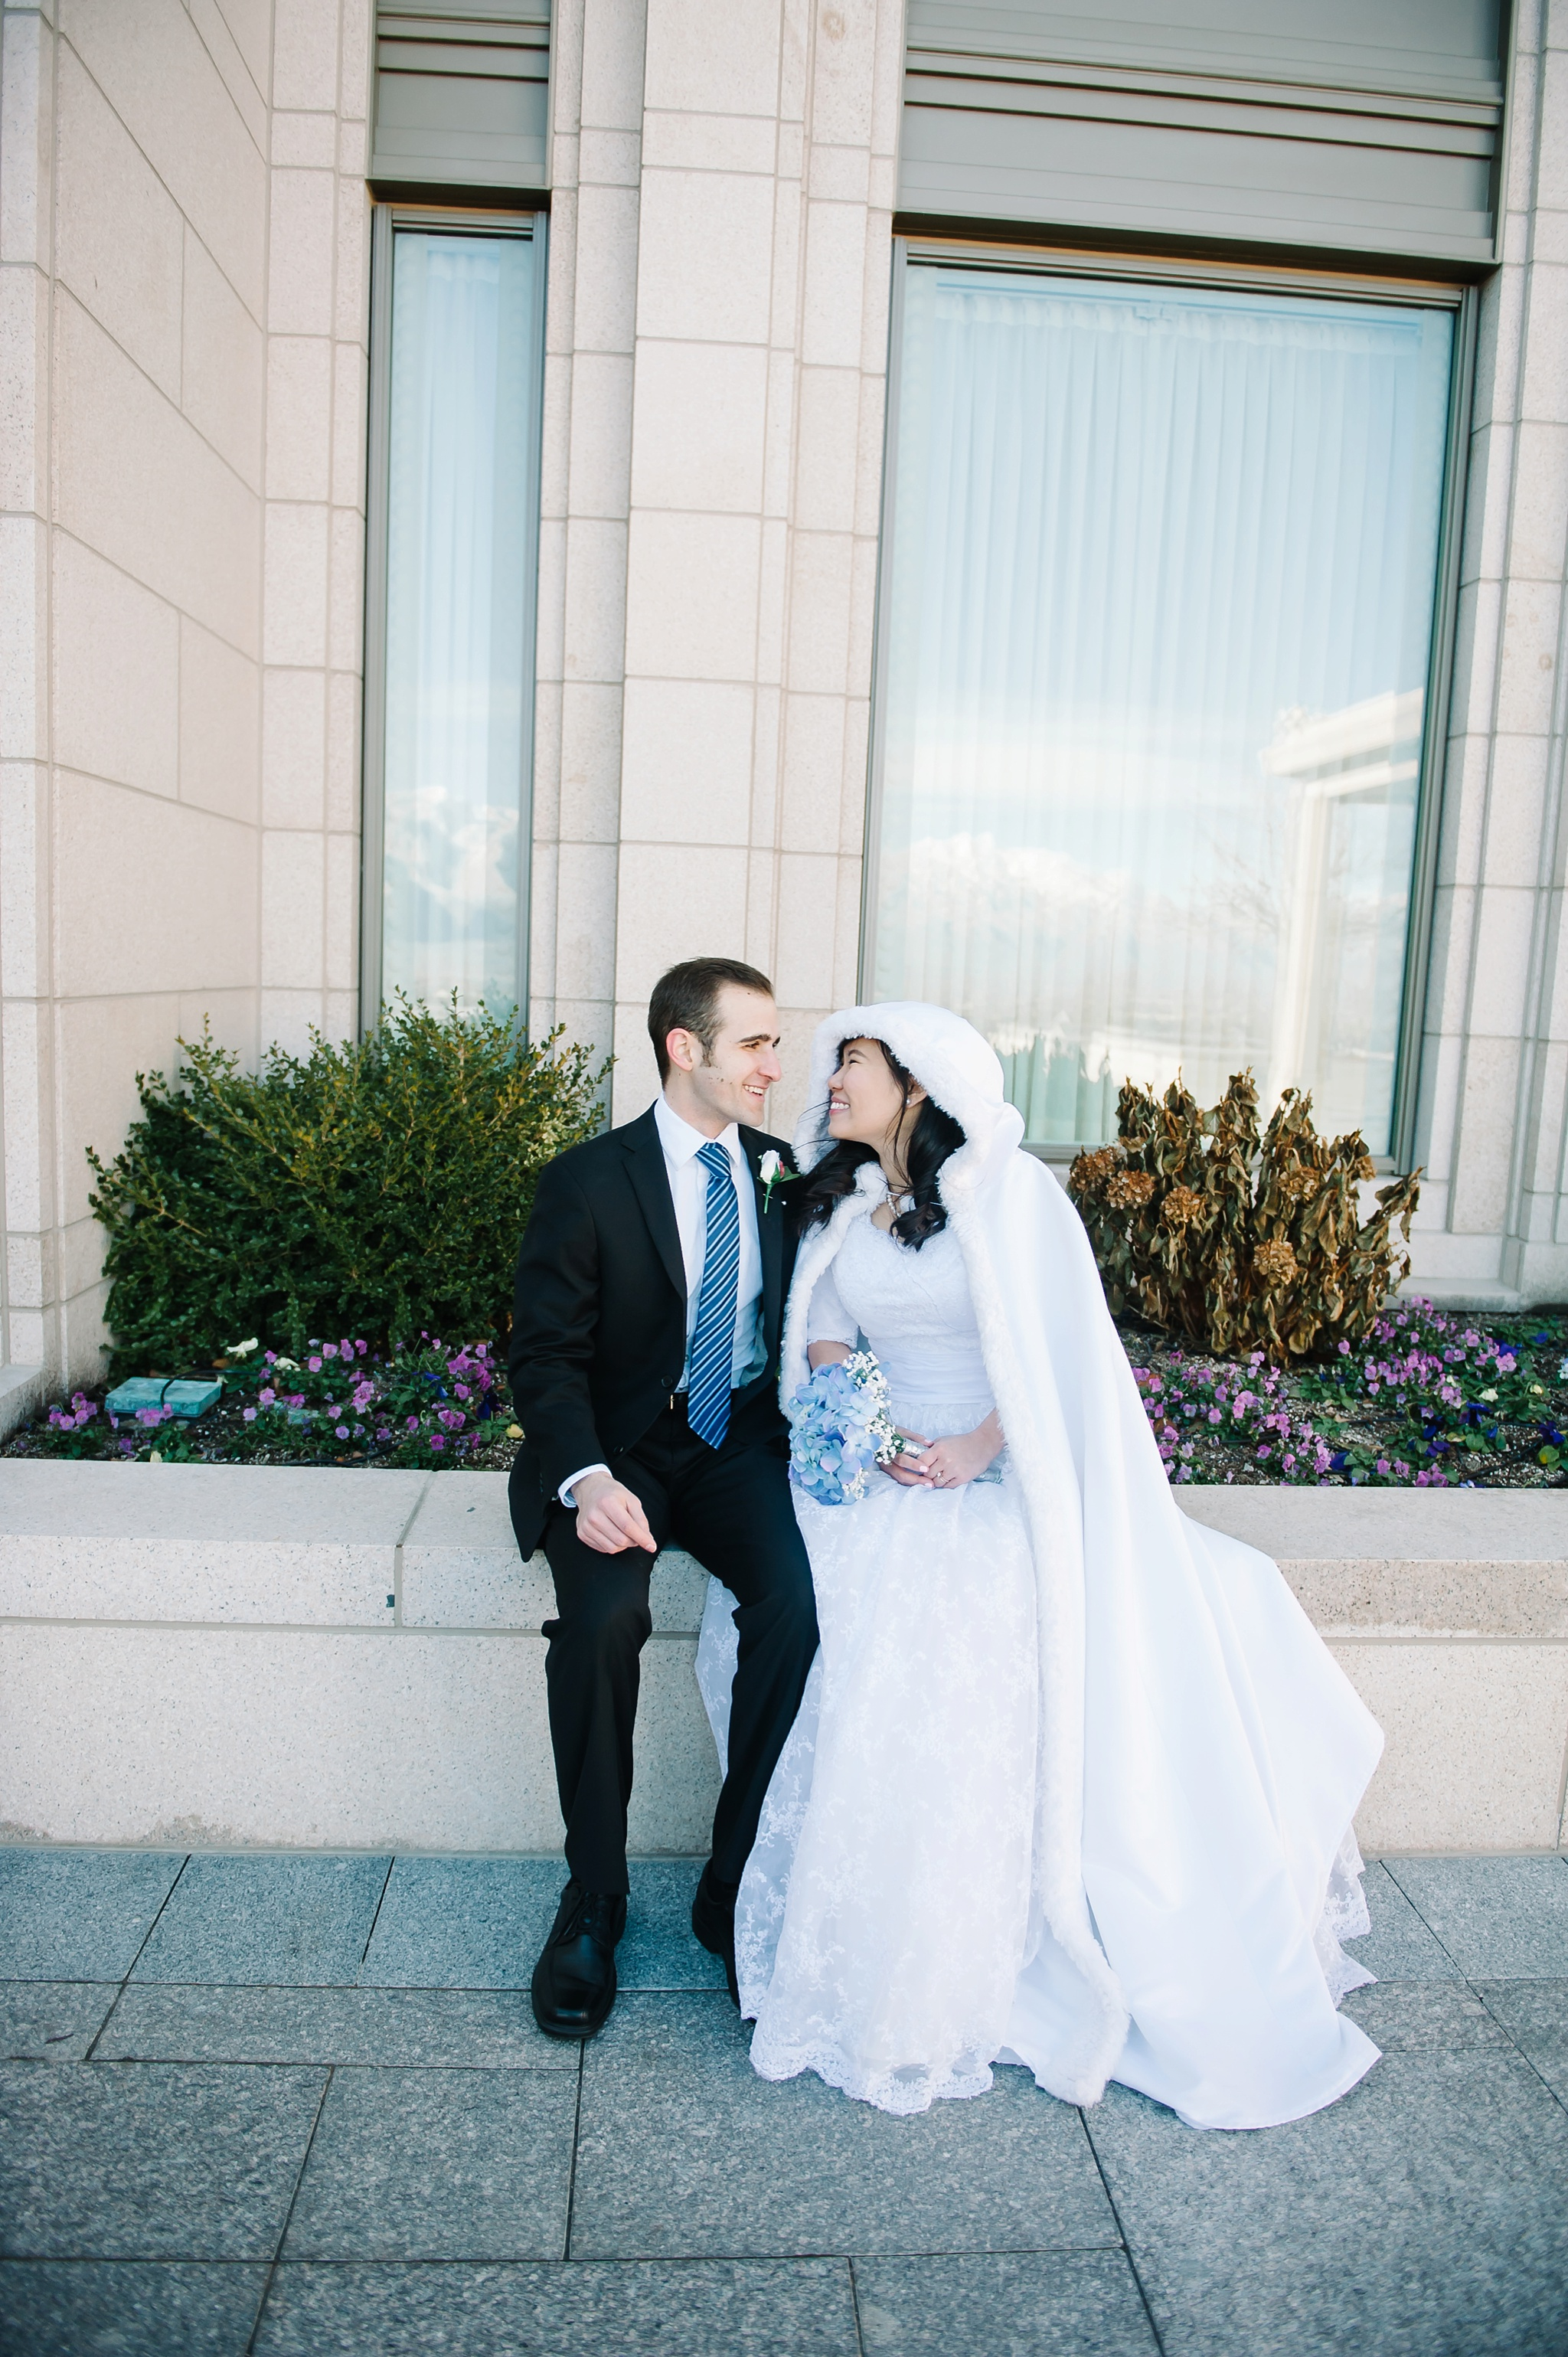 Salt Lake City Wedding Photographer Ali Sumsion 026